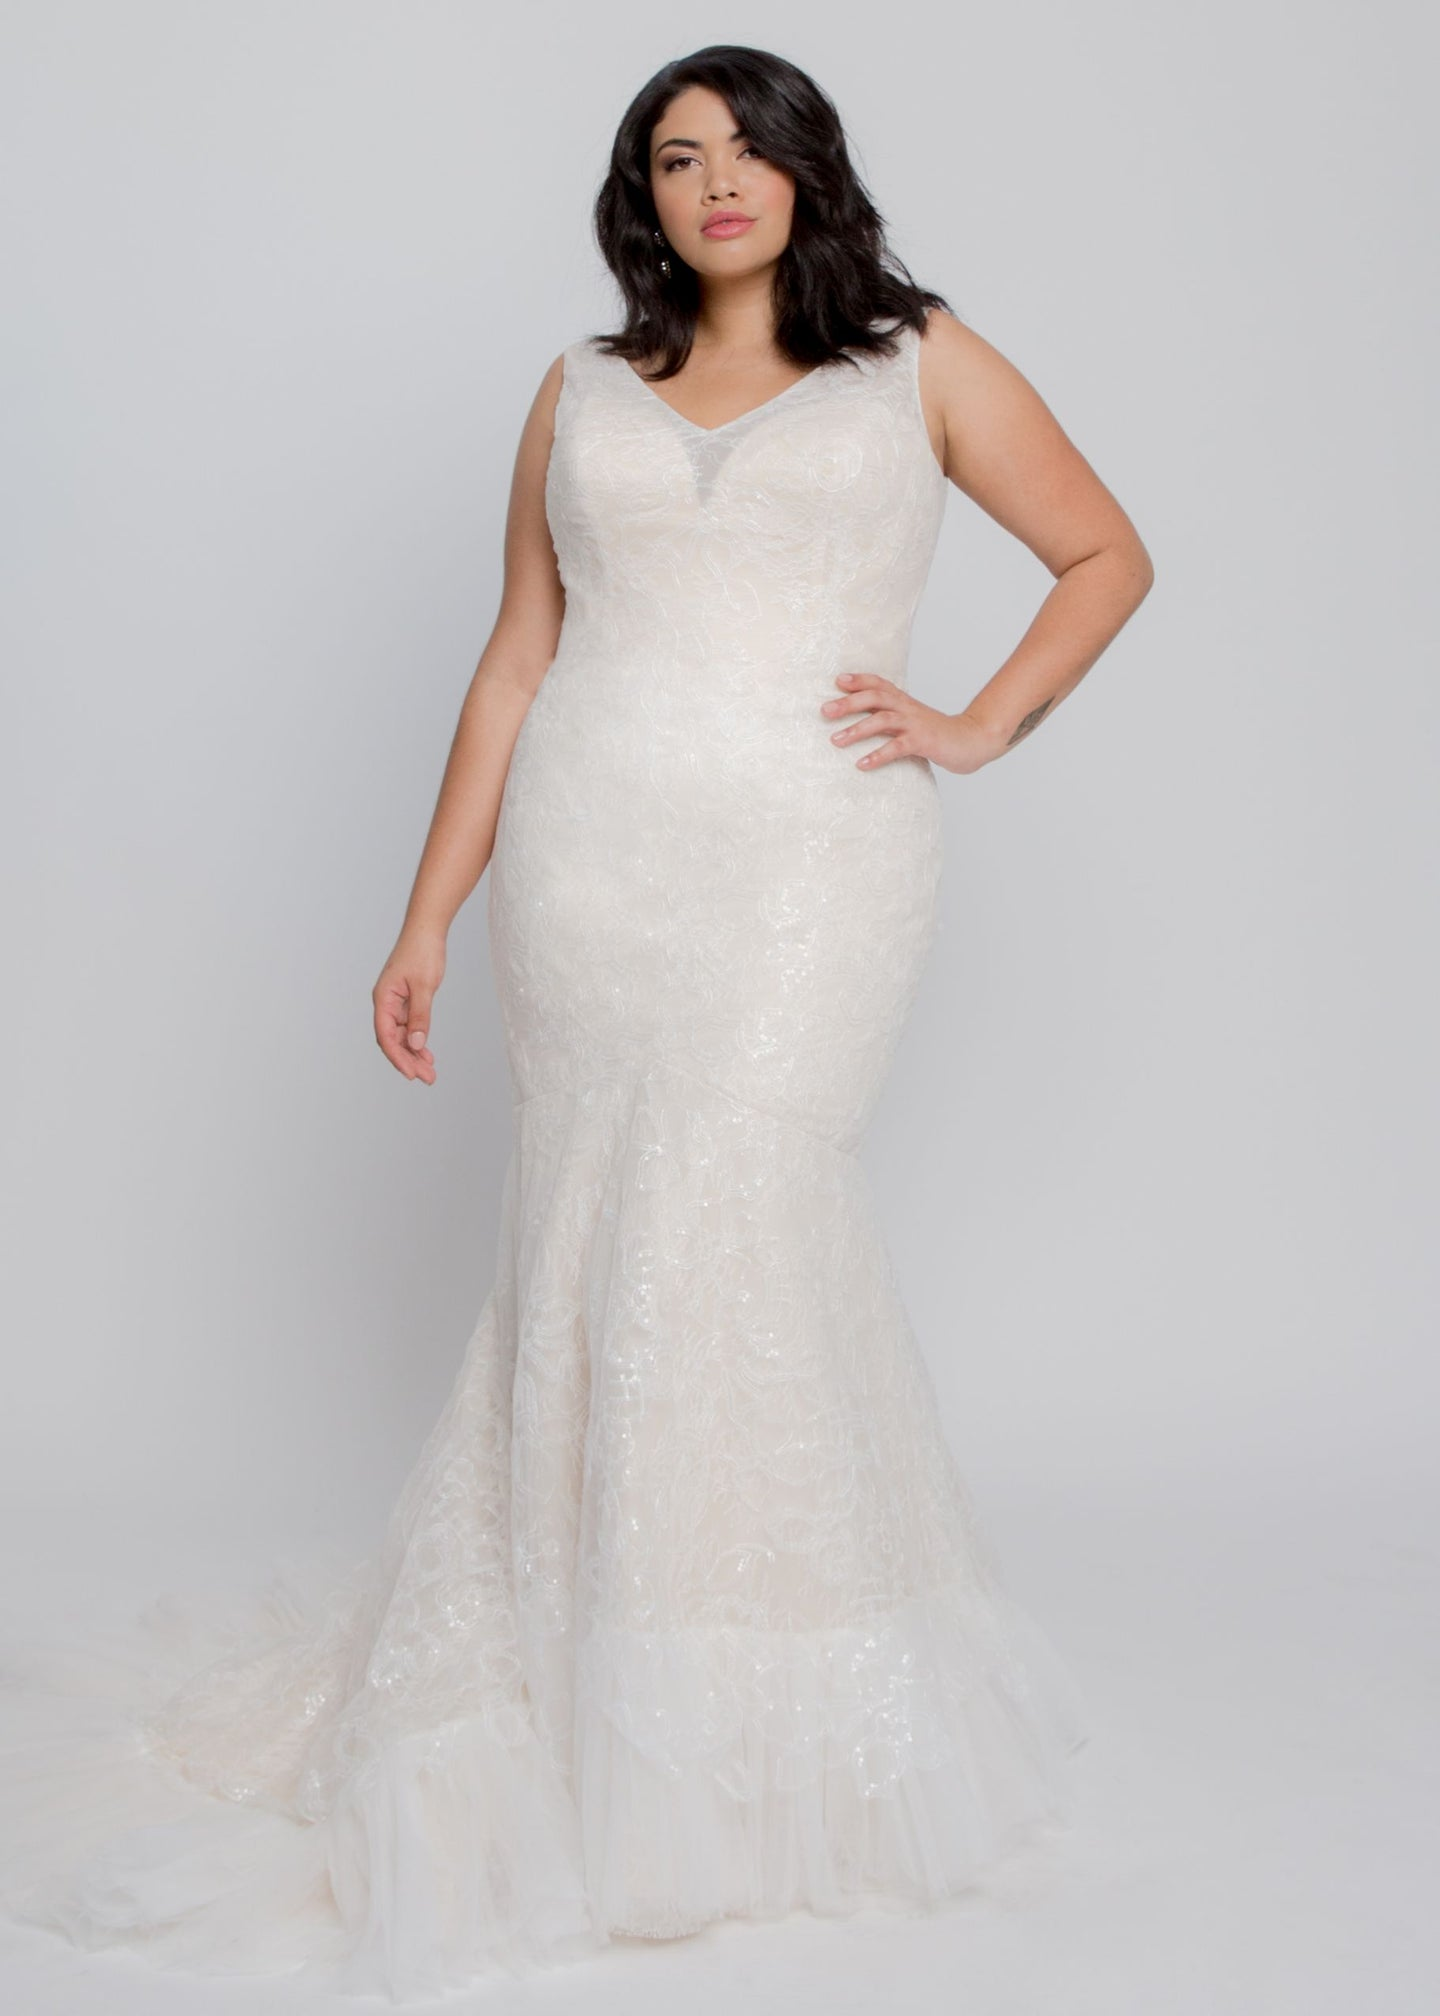 Gorgeous bridal gowns for all body shapes: plus size, curvy, or petite brides. Try on our wedding dresses at home. Size 0-30. Comfortable. Convenient. Fun. Lace or satin. Mermaid or A-line. The Violet Gown combines classic V neckline and trumpet skirt with a modern floral lace over a Champagne lining. Clean and open neckline in back is sure to wow along with the chapel train lined in tulle. Beading on the lace adds understated sparkle to this elegant gown.